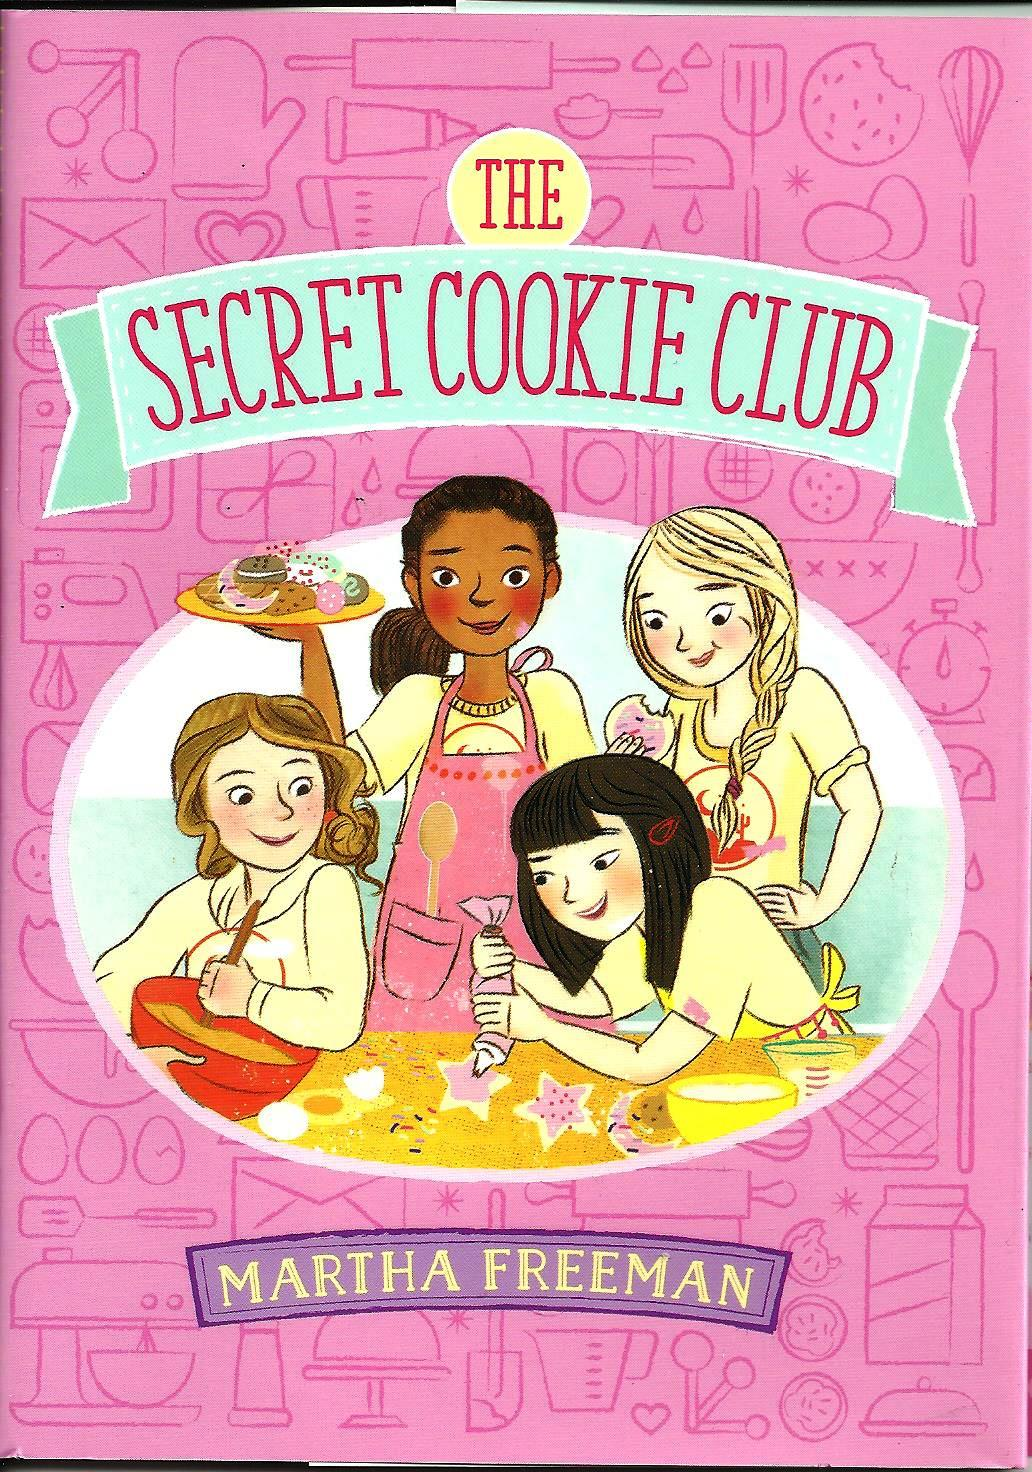 The Secret Cookie Club by Martha Freeman